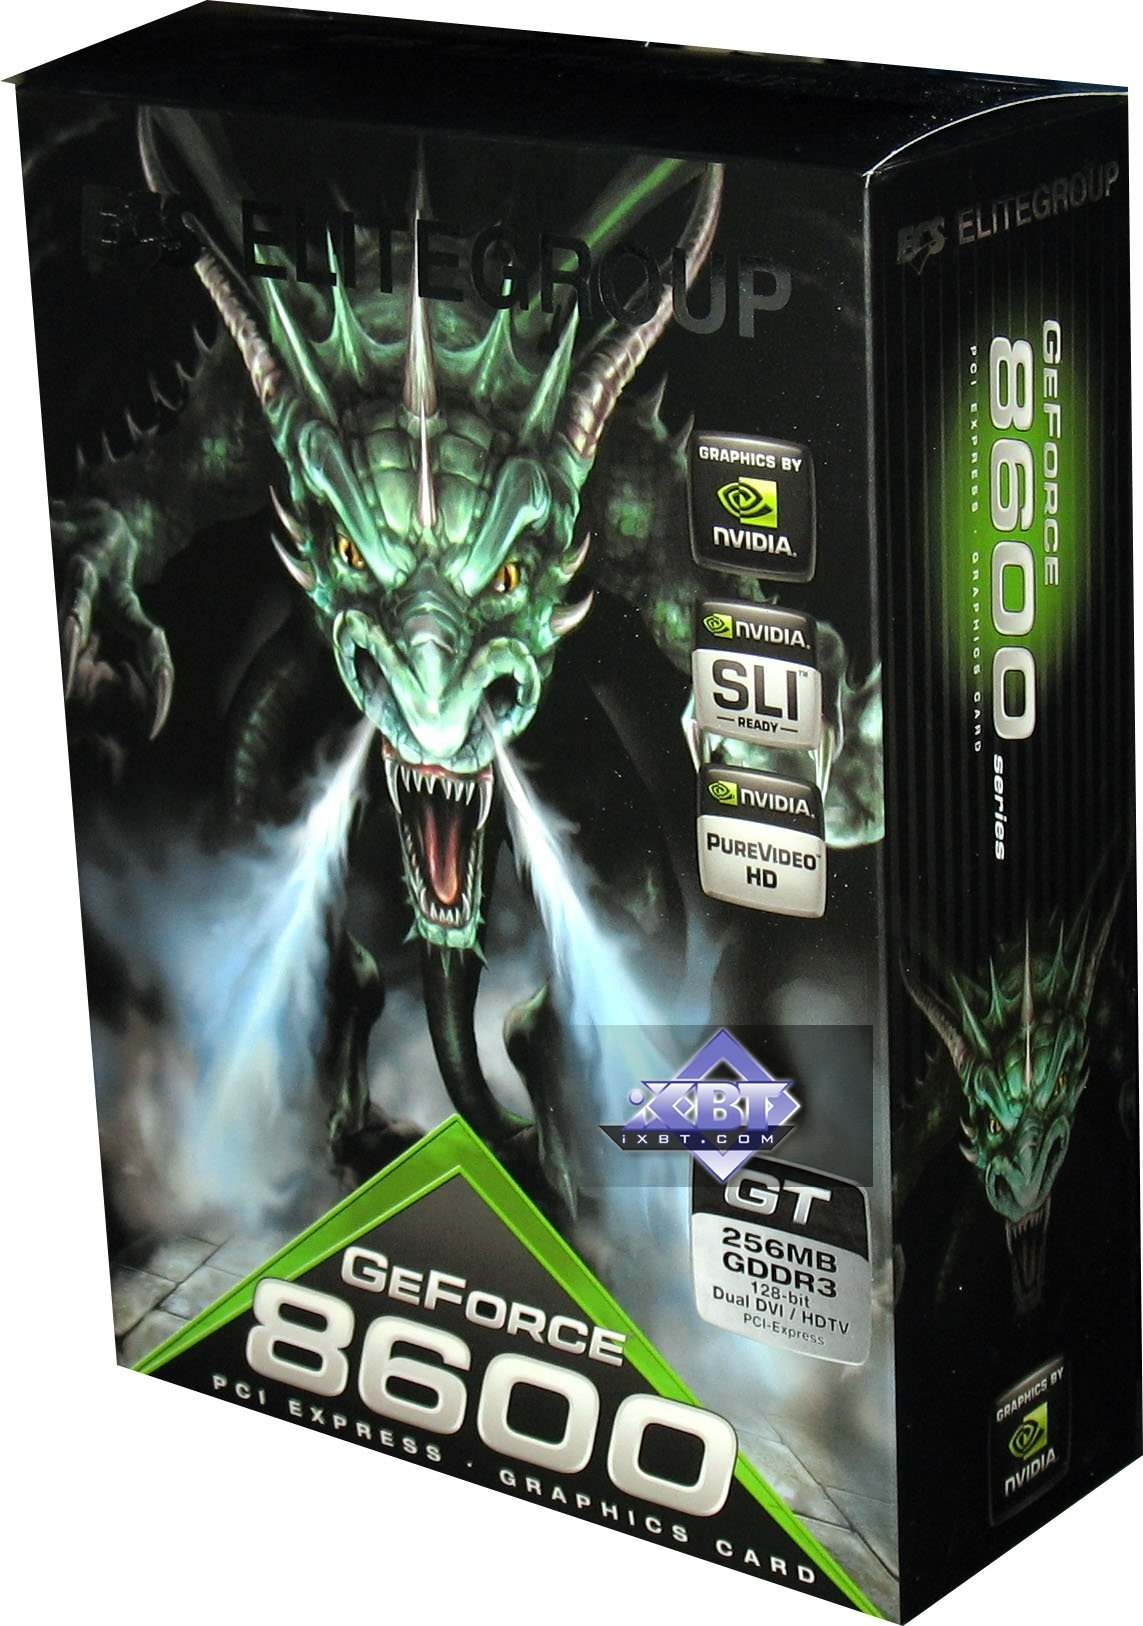 geforce 8600 gt overclock software